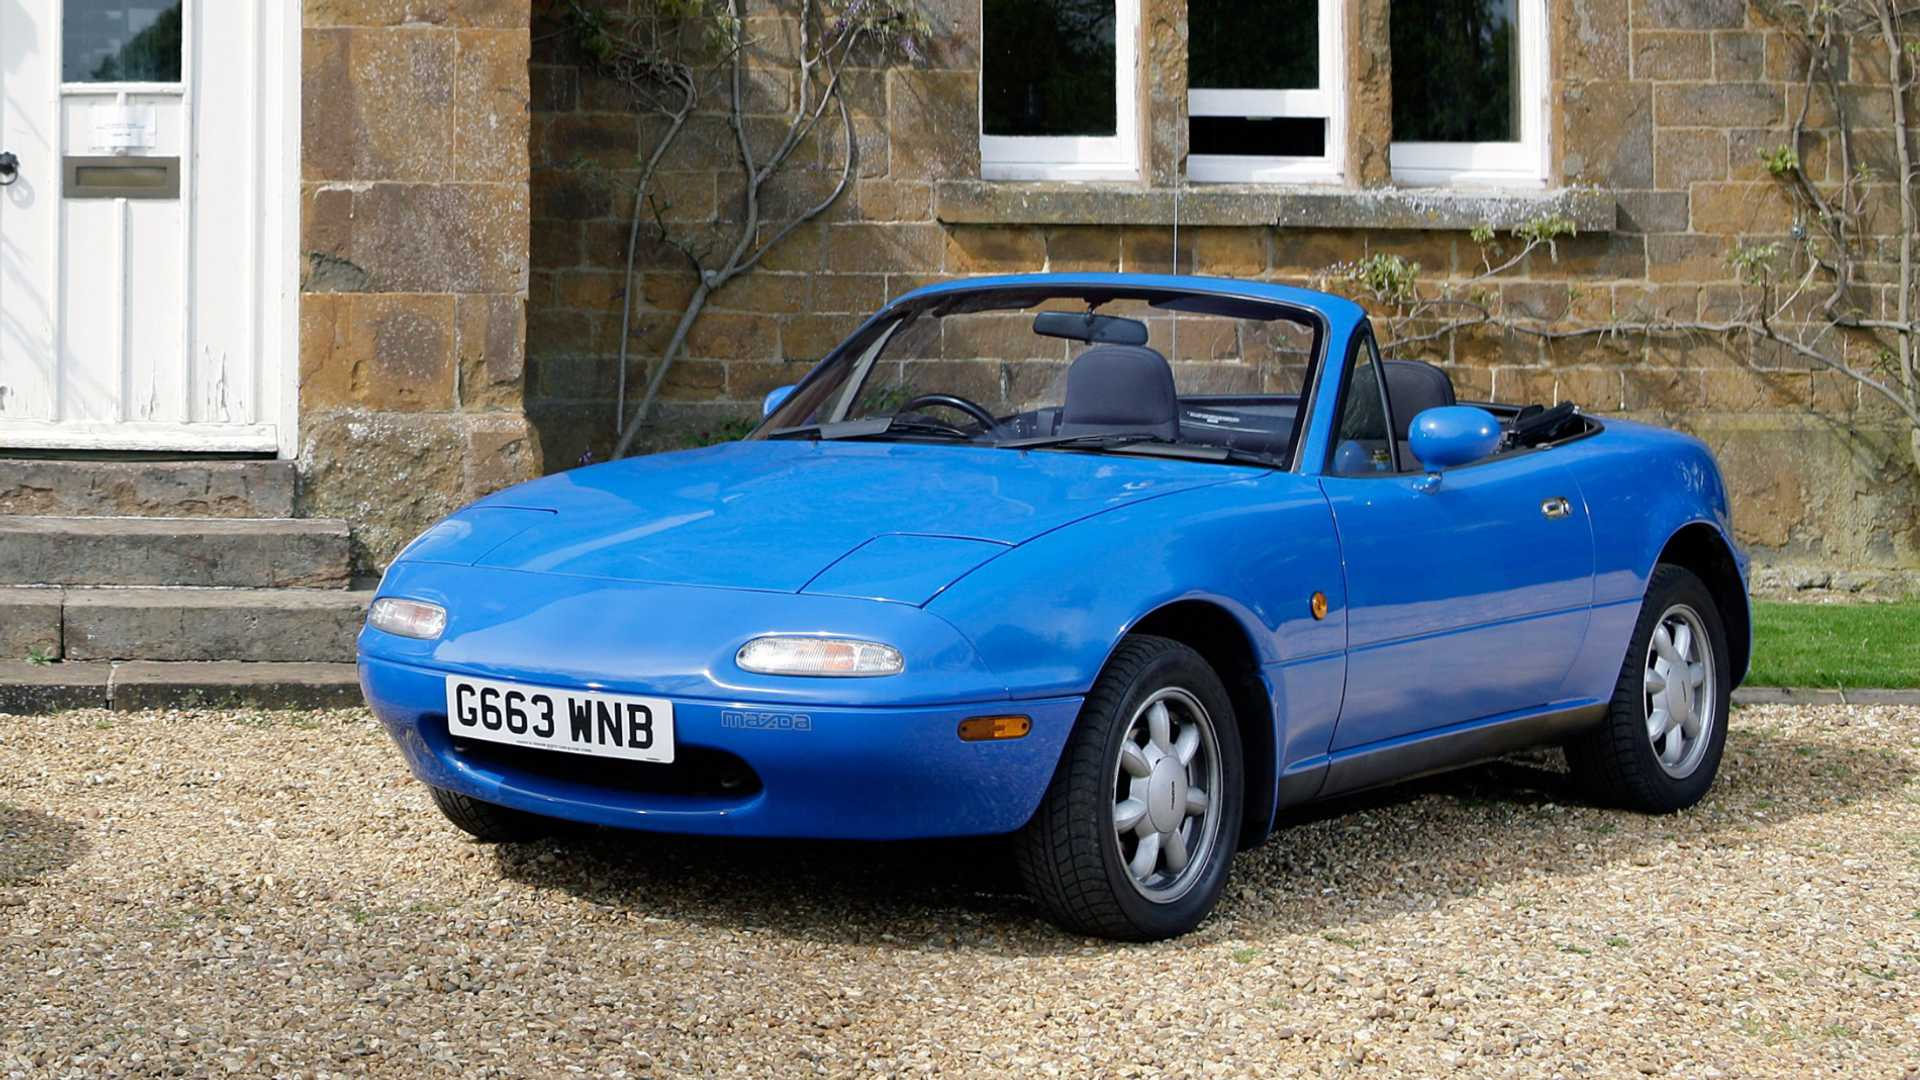 Historic vehicle federation welcomes MX-5 and NSX to the classic club